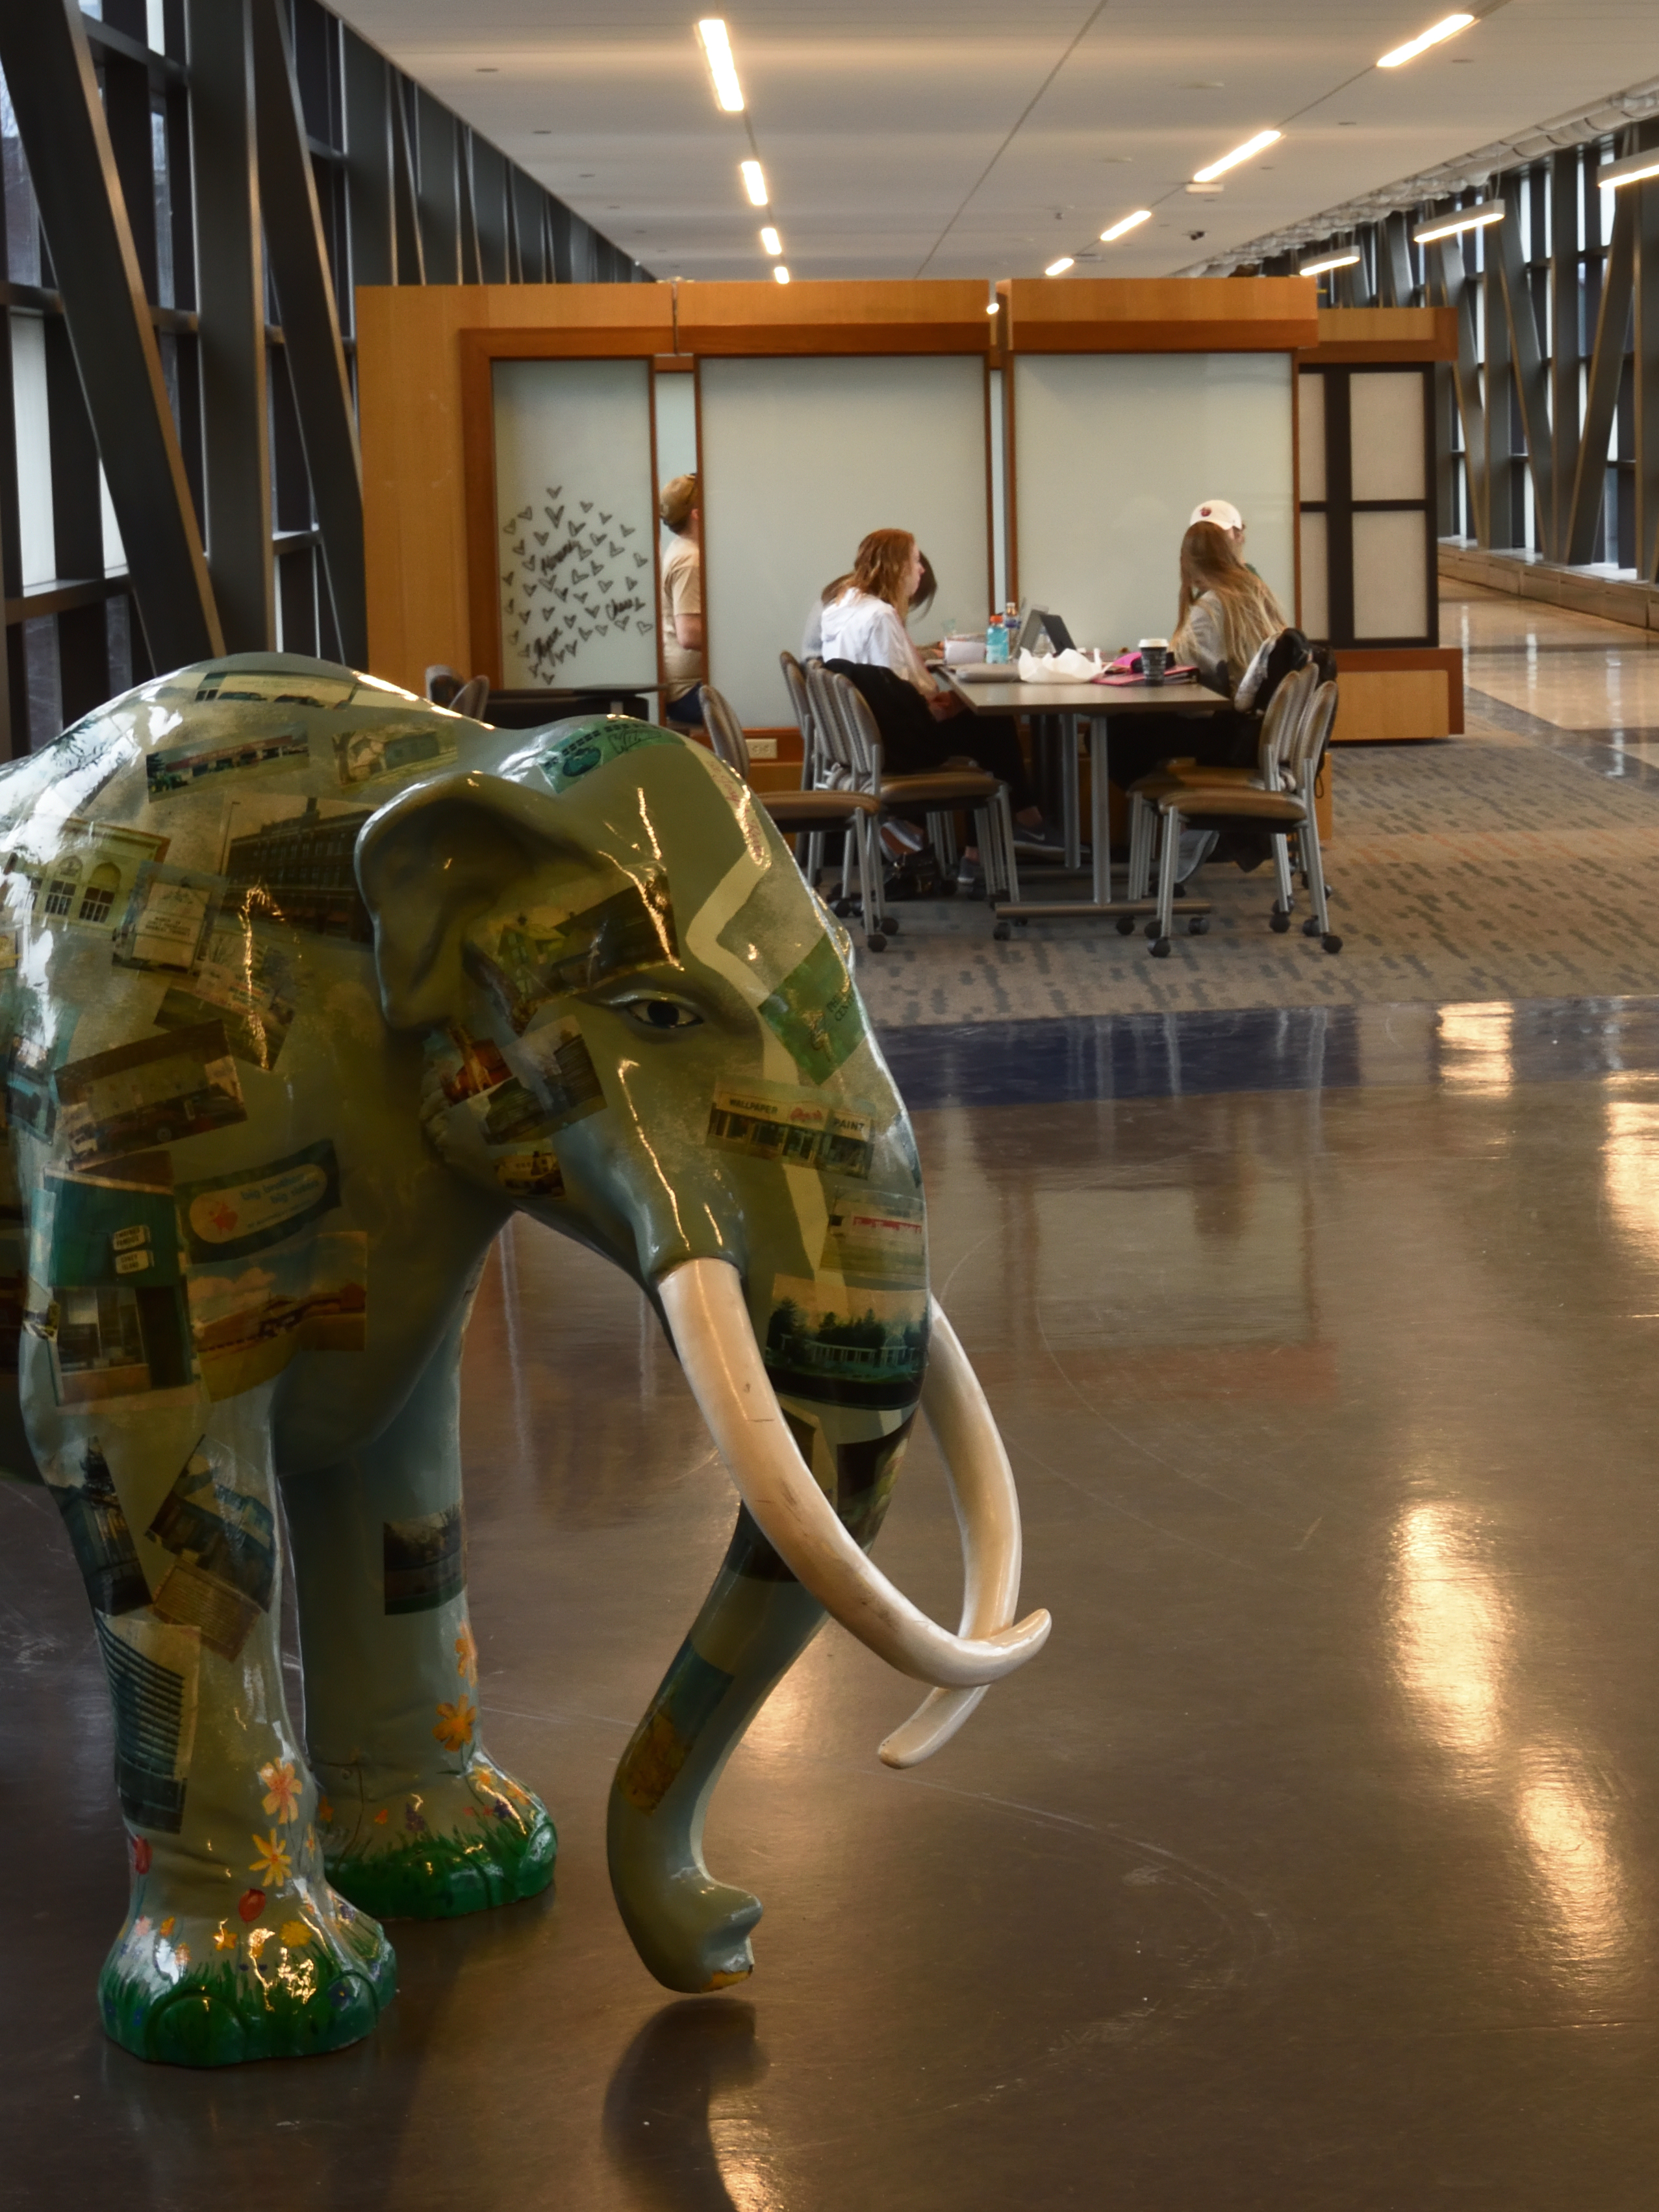 Study group in background with brightly painted mastodon in foreground.